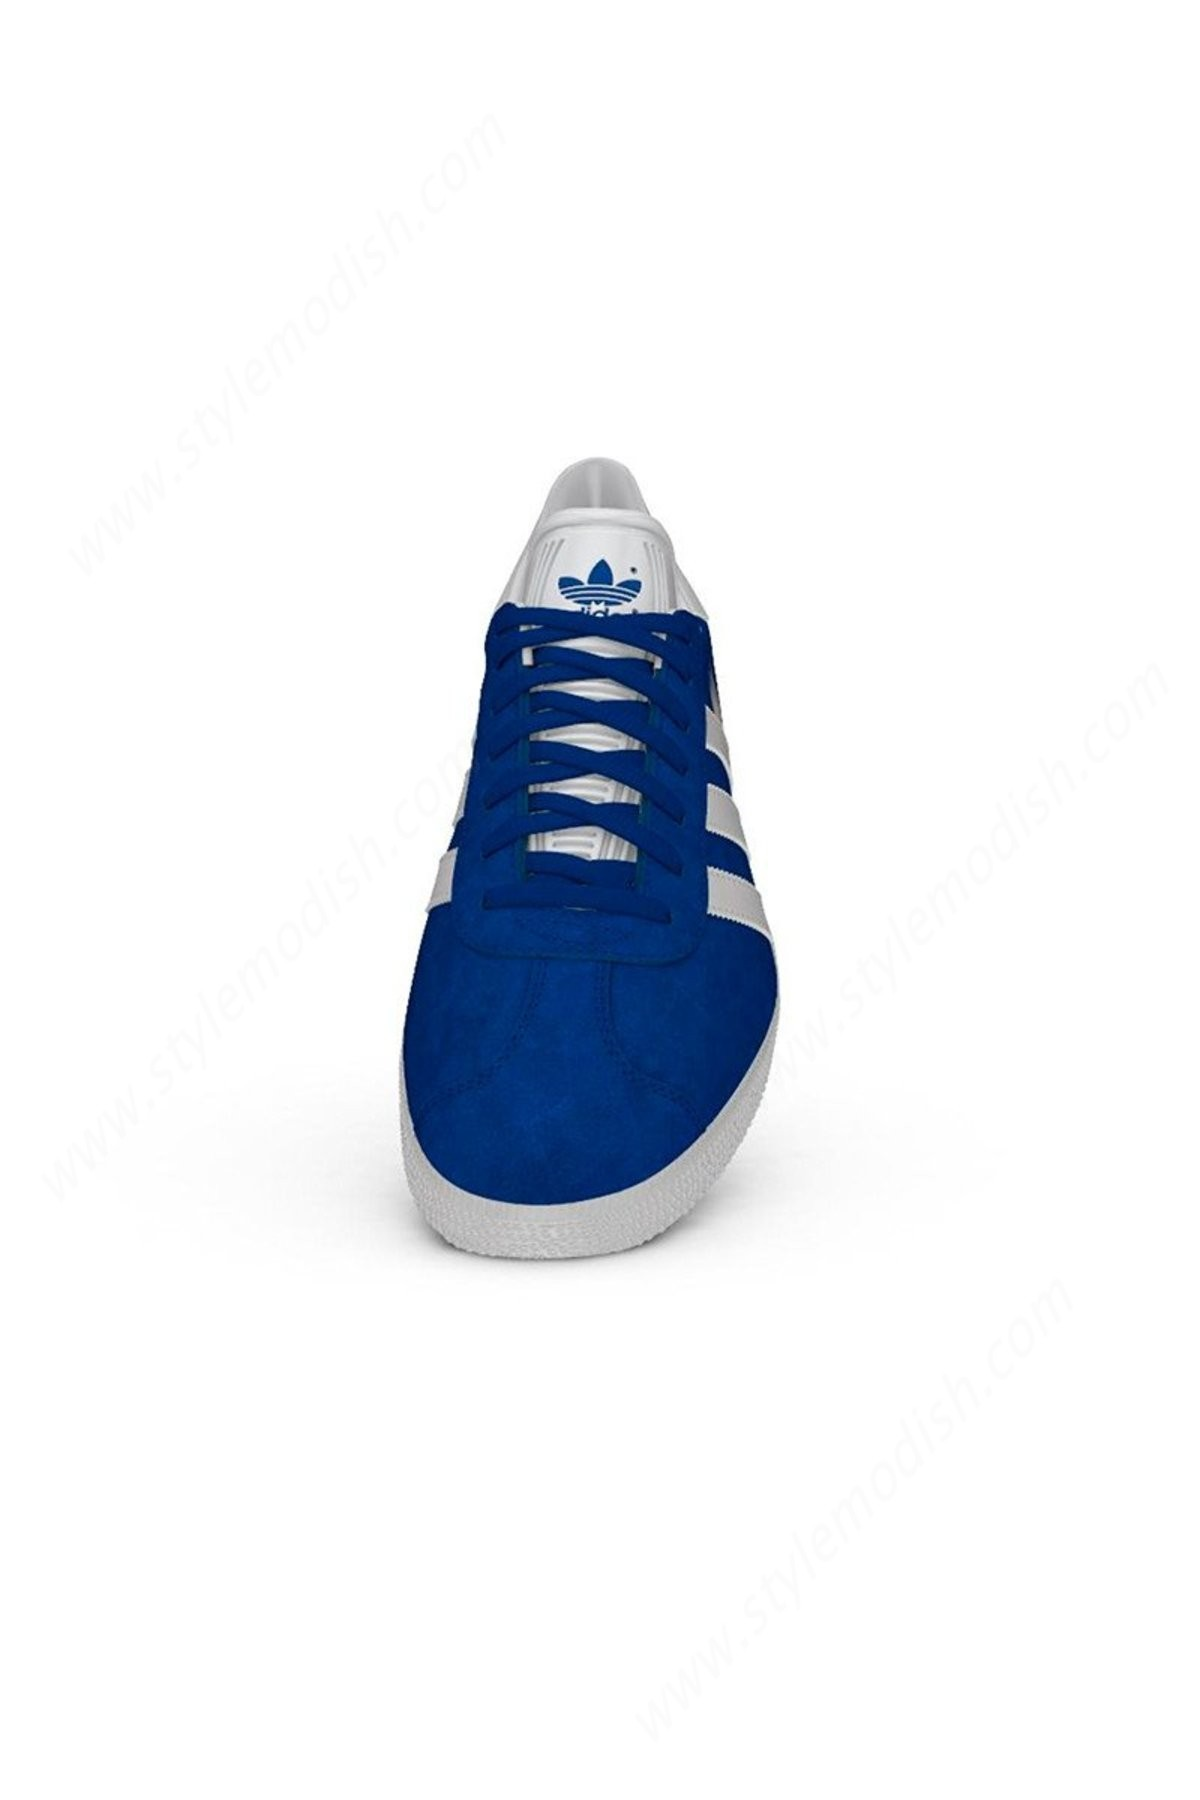 Man's Adidas Originals Gazelle Sneakers - Collegiate Royal/white/gold - -2